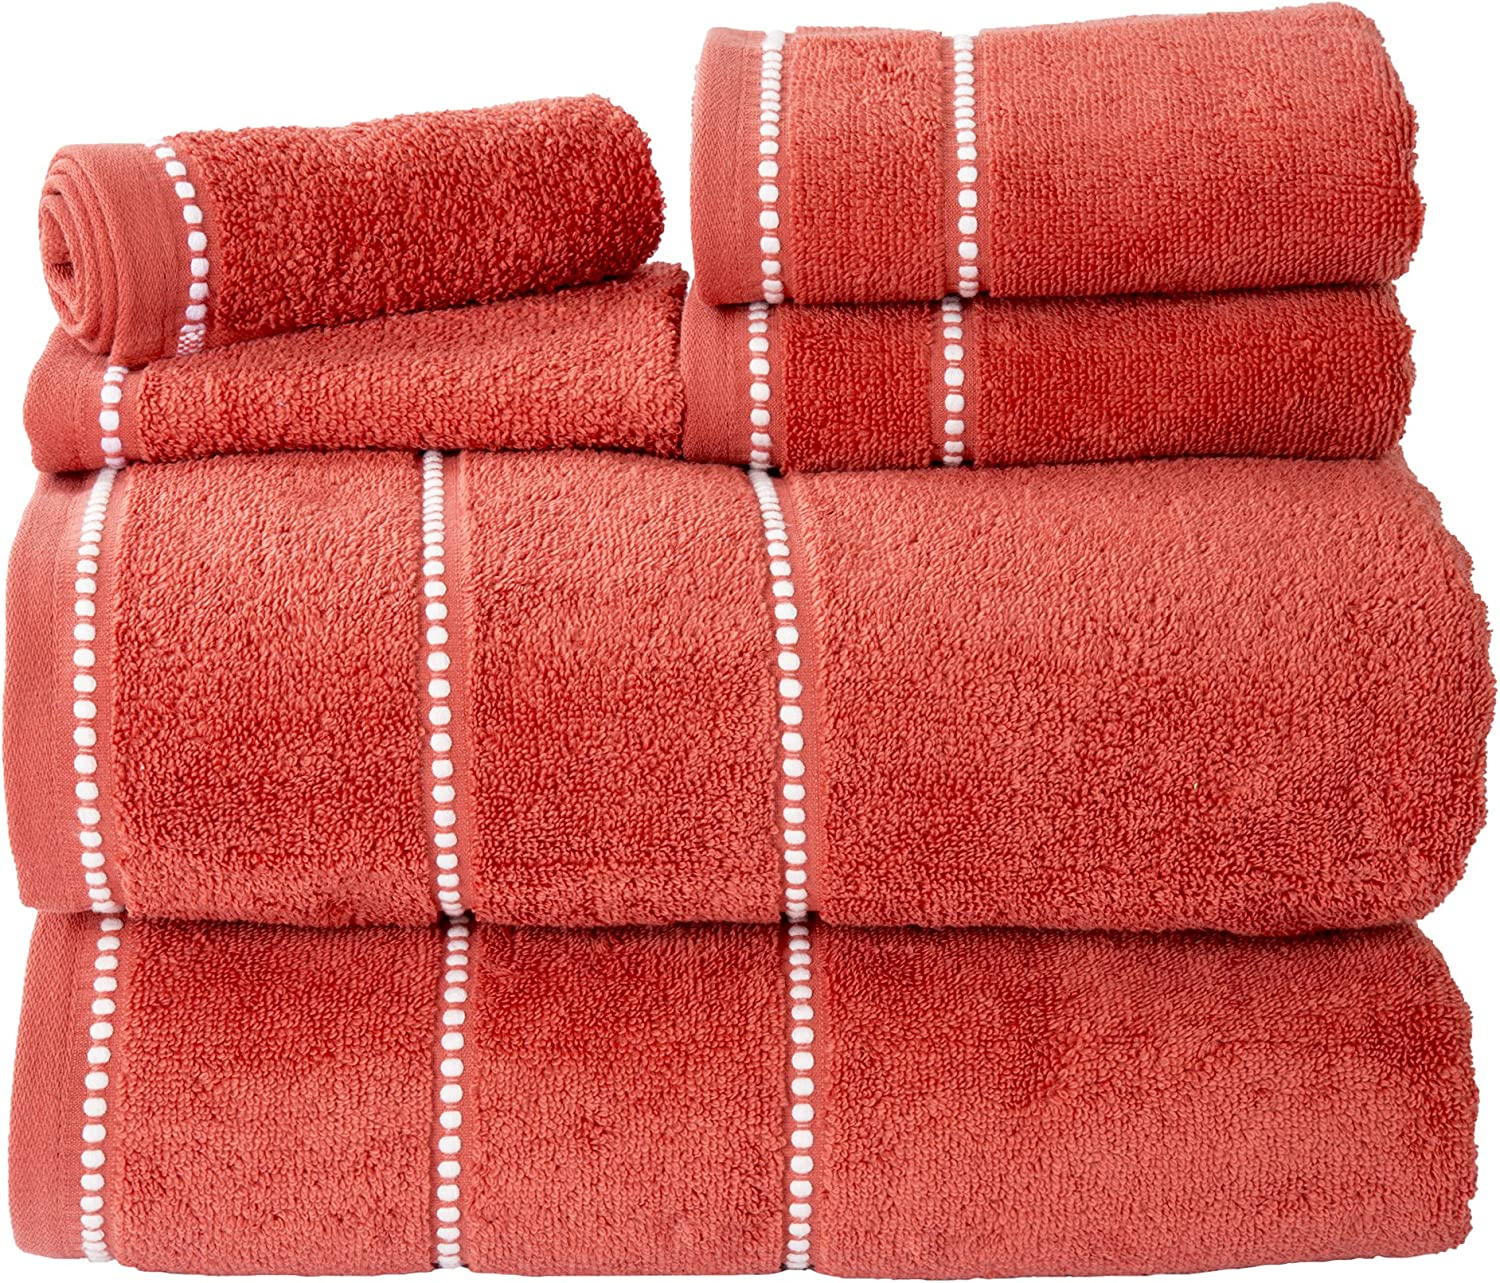 Luxury Cotton Towel Set- Quick Dry, Zero Twist and Soft 6 Piece Set With 2 Bath Towels, 2 Hand Towels and 2 Washcloths By Lavish Home (Brick / White)